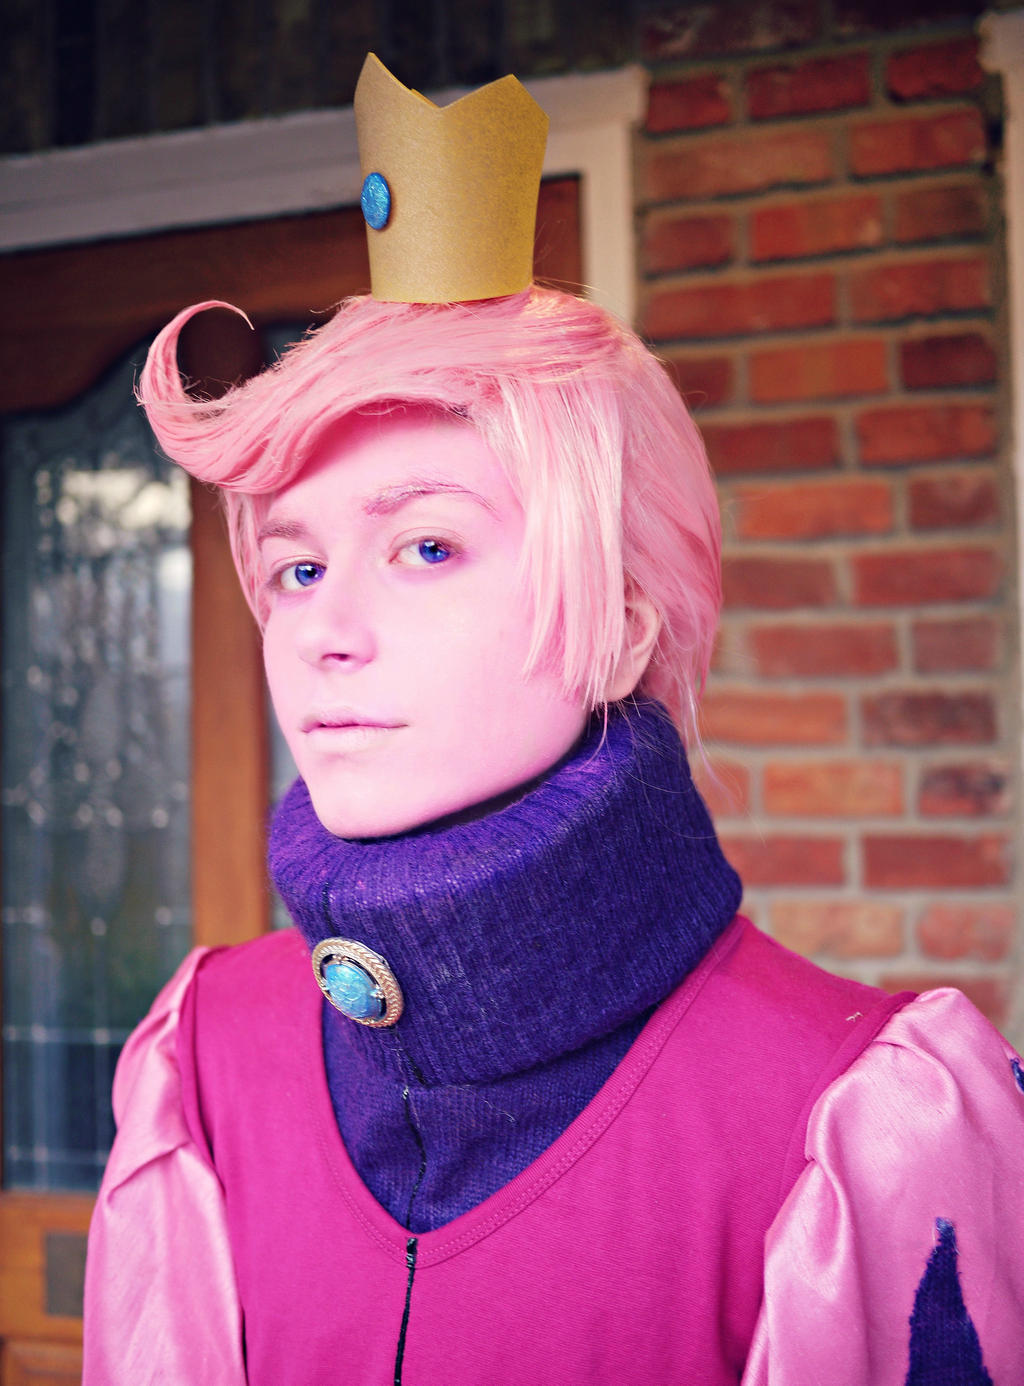 Prince Gumball by dsebs